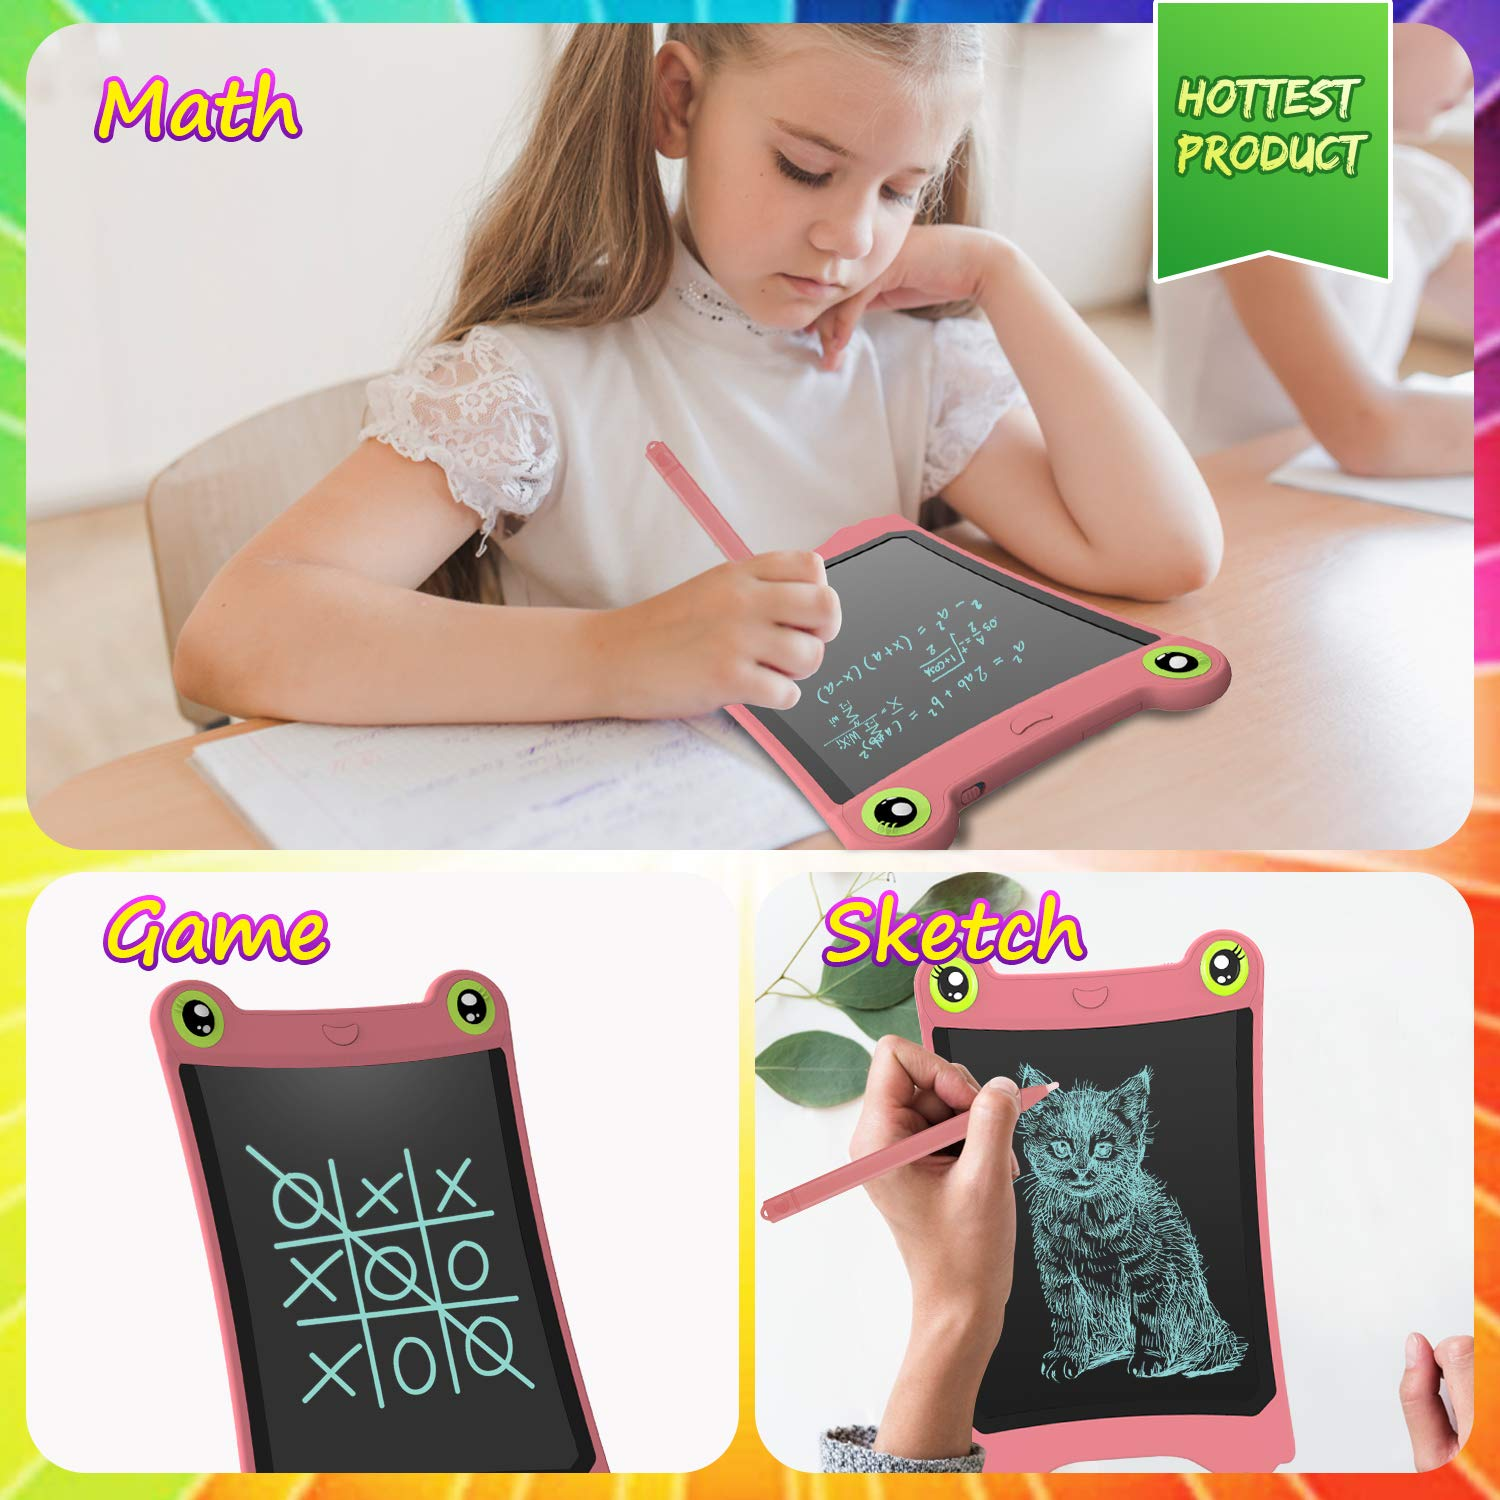 NEWYES 8.5 Inch LCD Writing Tablet Updated Frog Pad Children Electronic Doodle Board Jot Digital E-Writer Kids Scribble Toy with Lock Function Pink by NEWYES (Image #6)